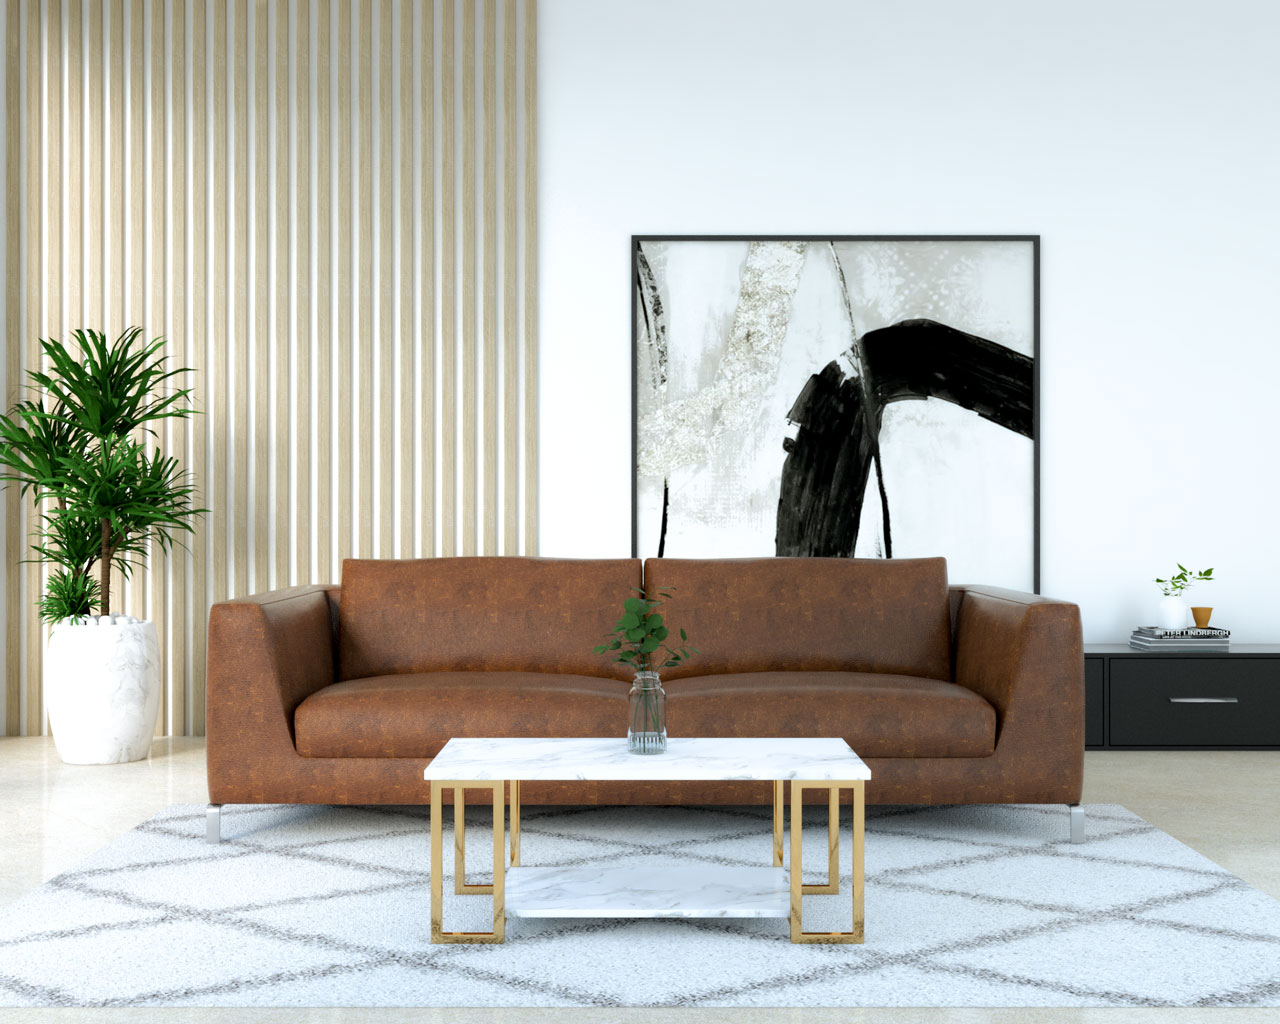 White and gold coffee table with dark brown leather couch